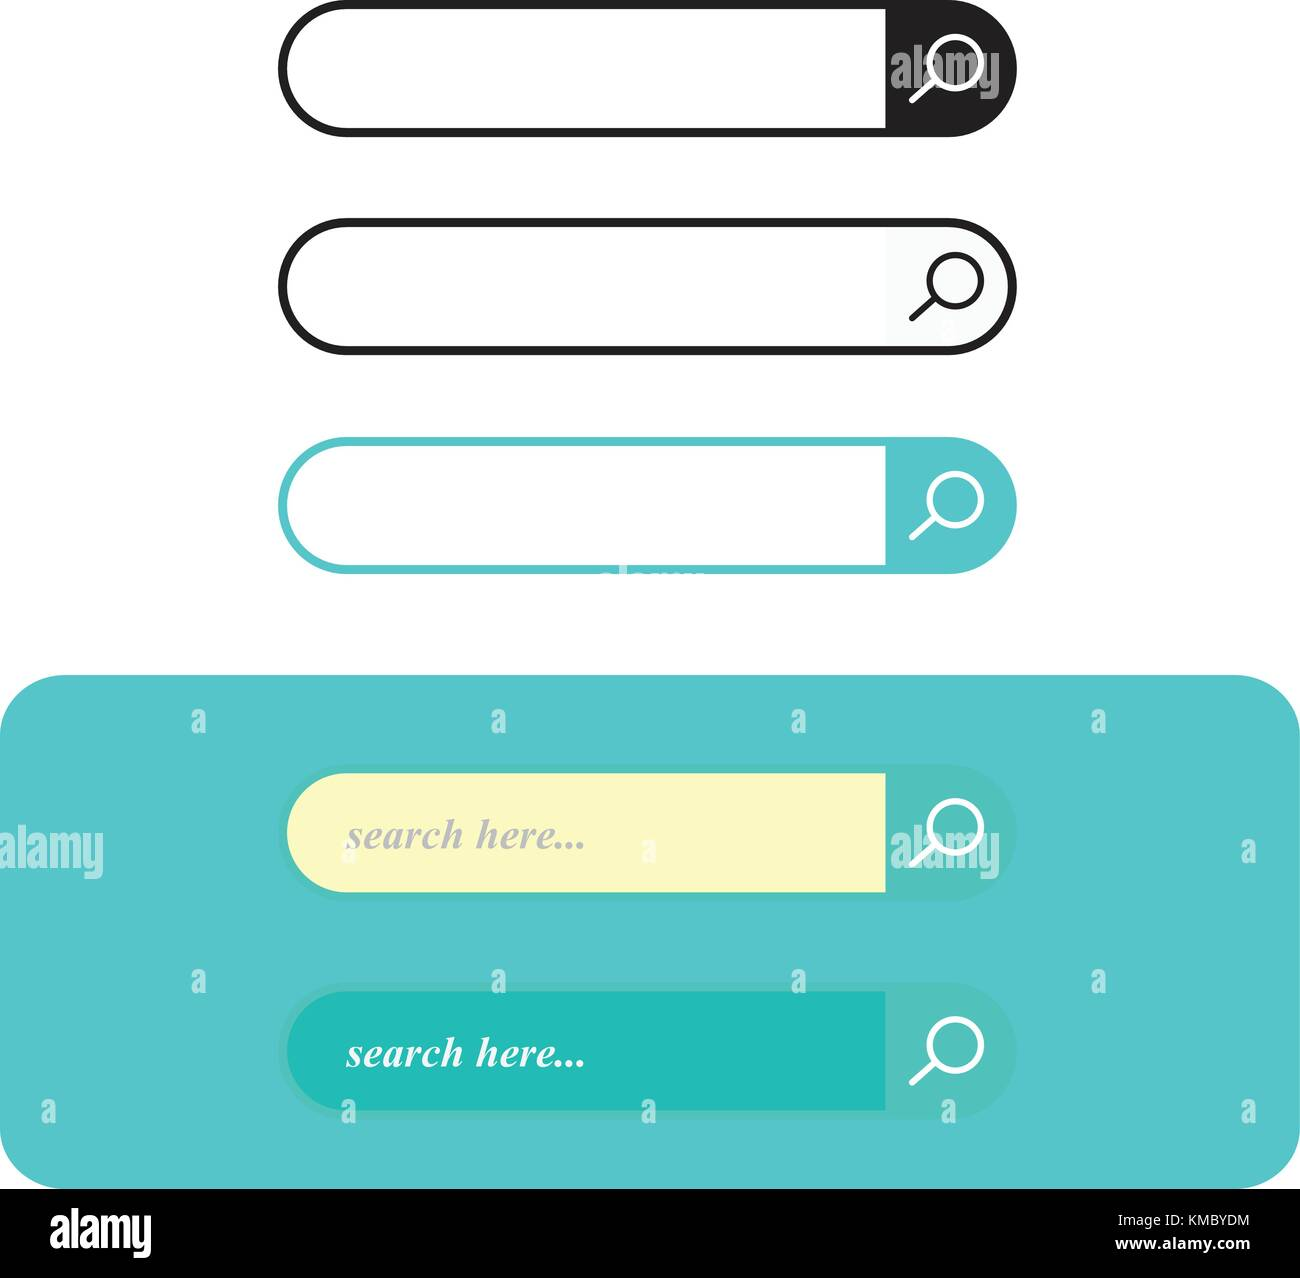 Search bar set vector interface elements with search button, search box modern simple design - Stock Image